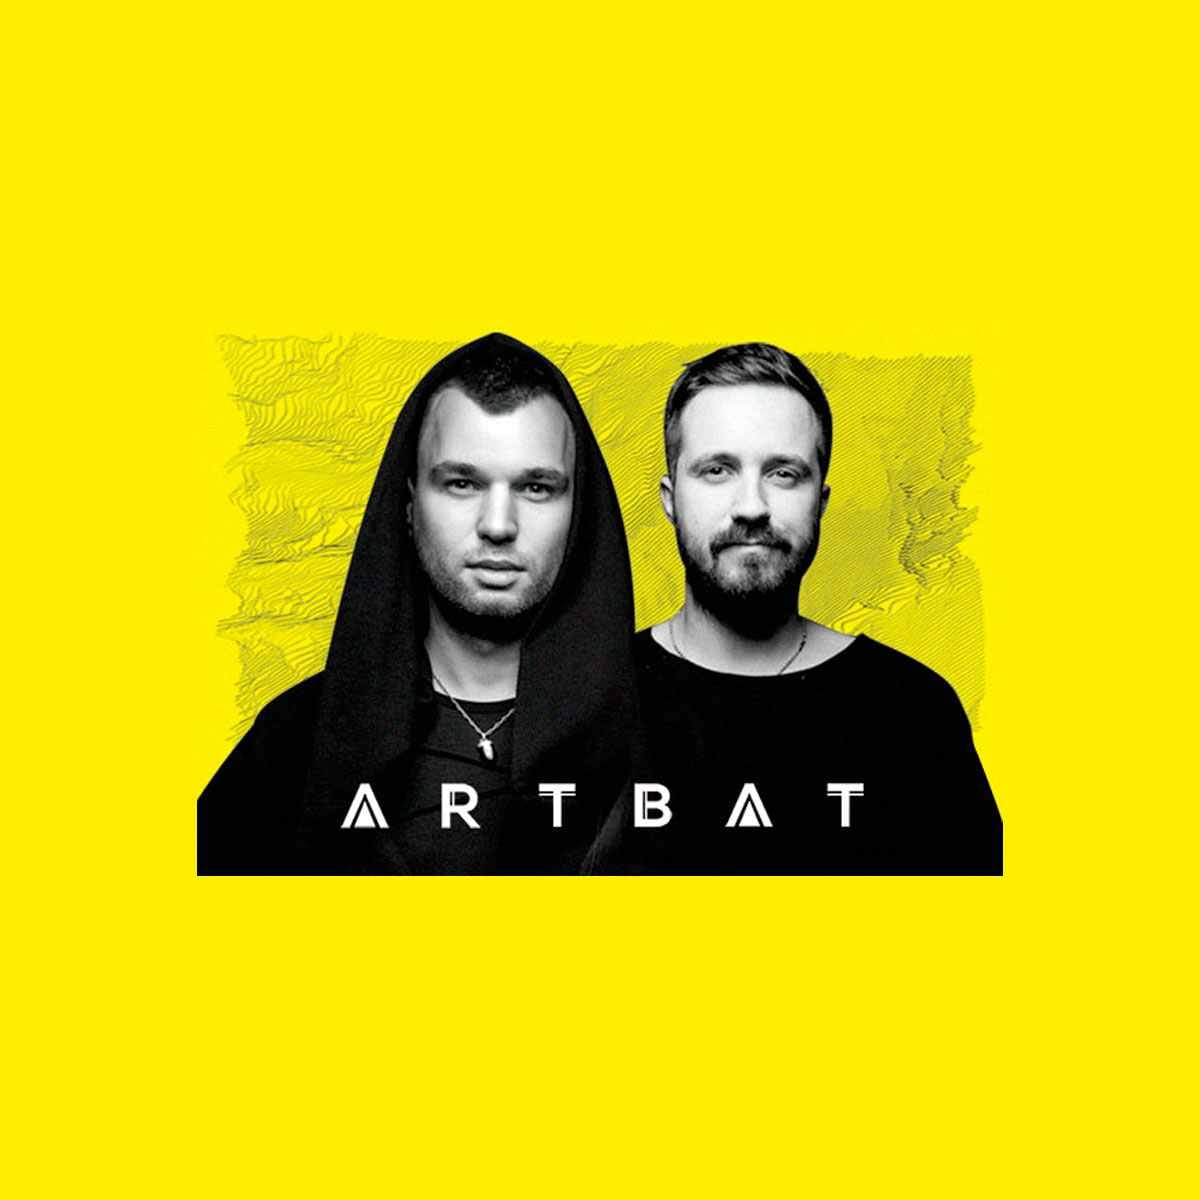 Artbat - Wall (Original Mix) [TECHNO] Suara, Coyu's label bring this banger from the Ukranian DJ duo.